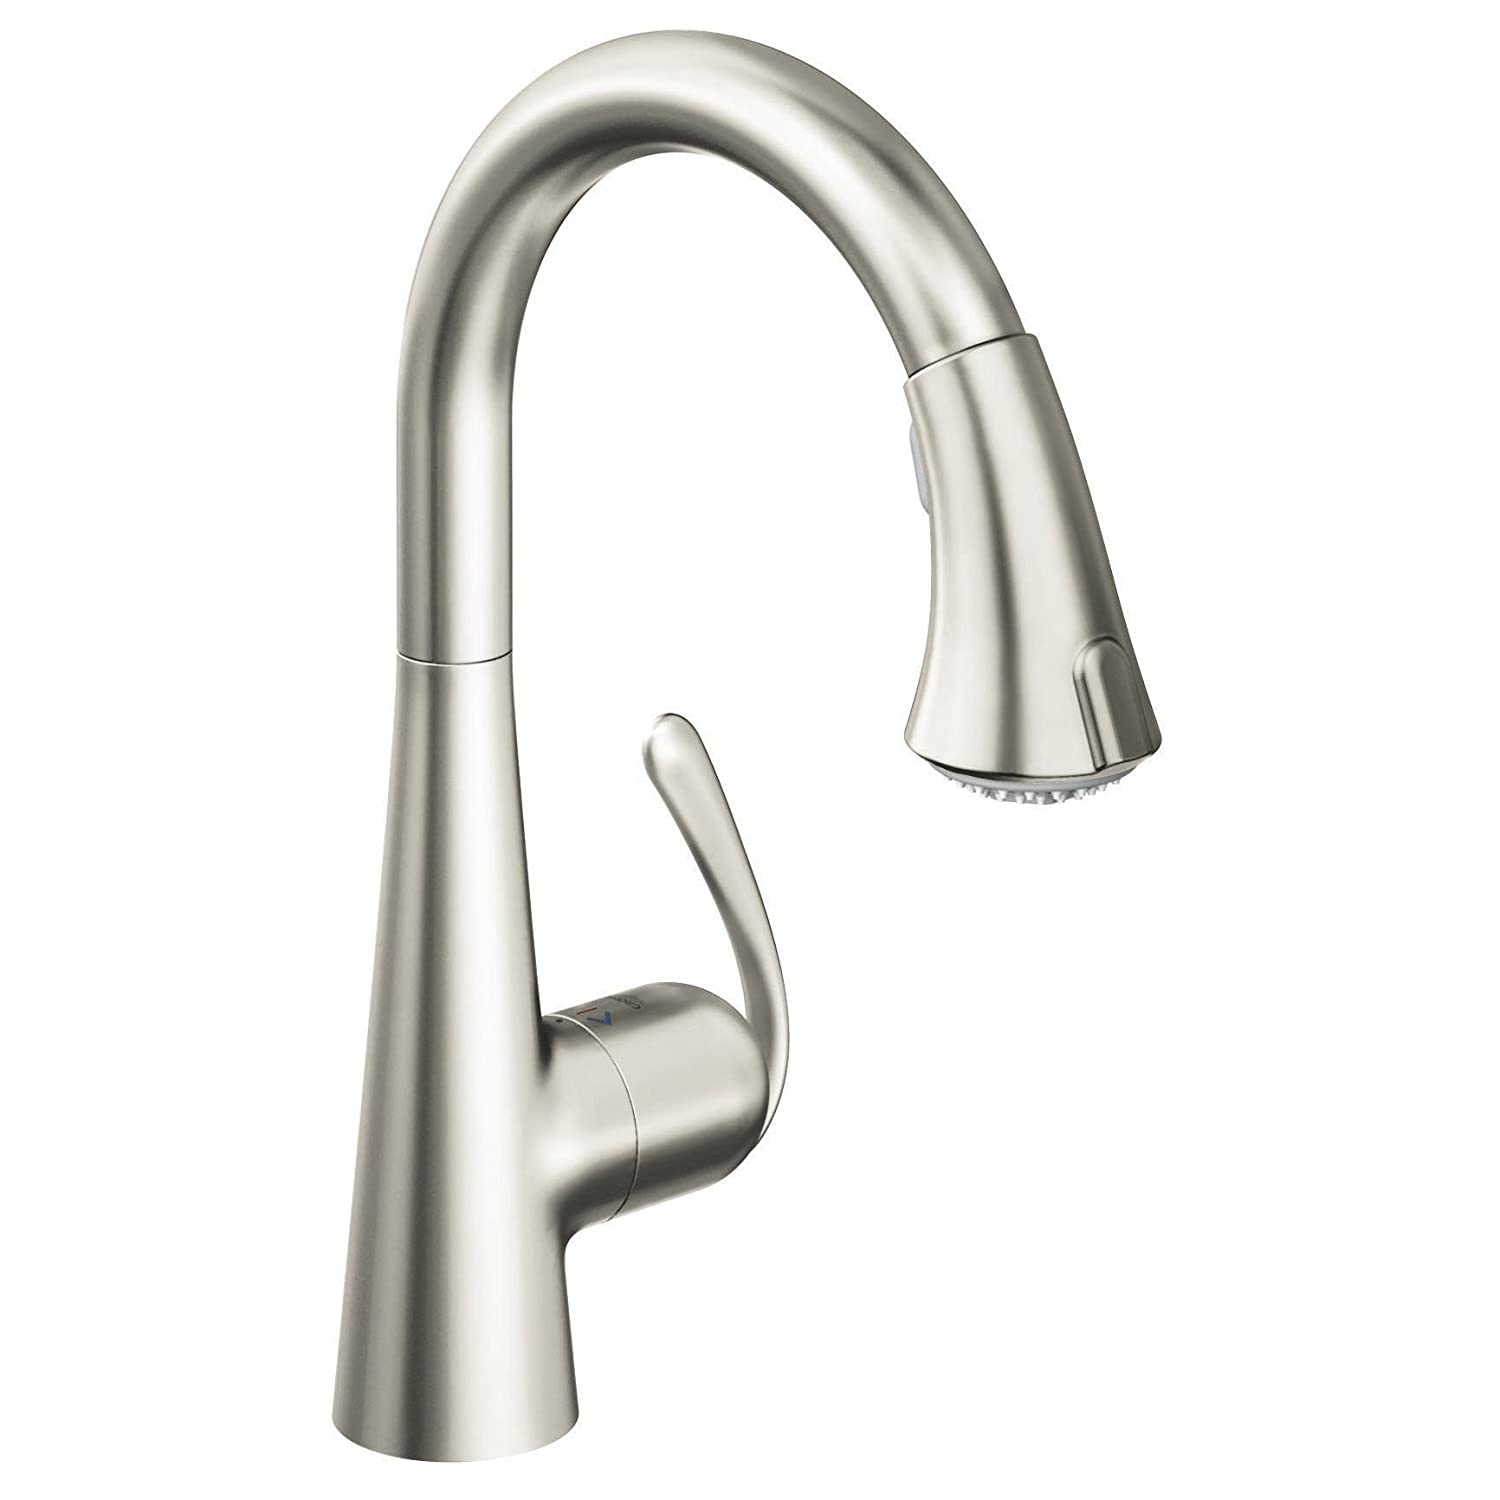 Grohe 32 298 SD0 Ladylux3 Main Sink Dual Spray Pull Down Kitchen